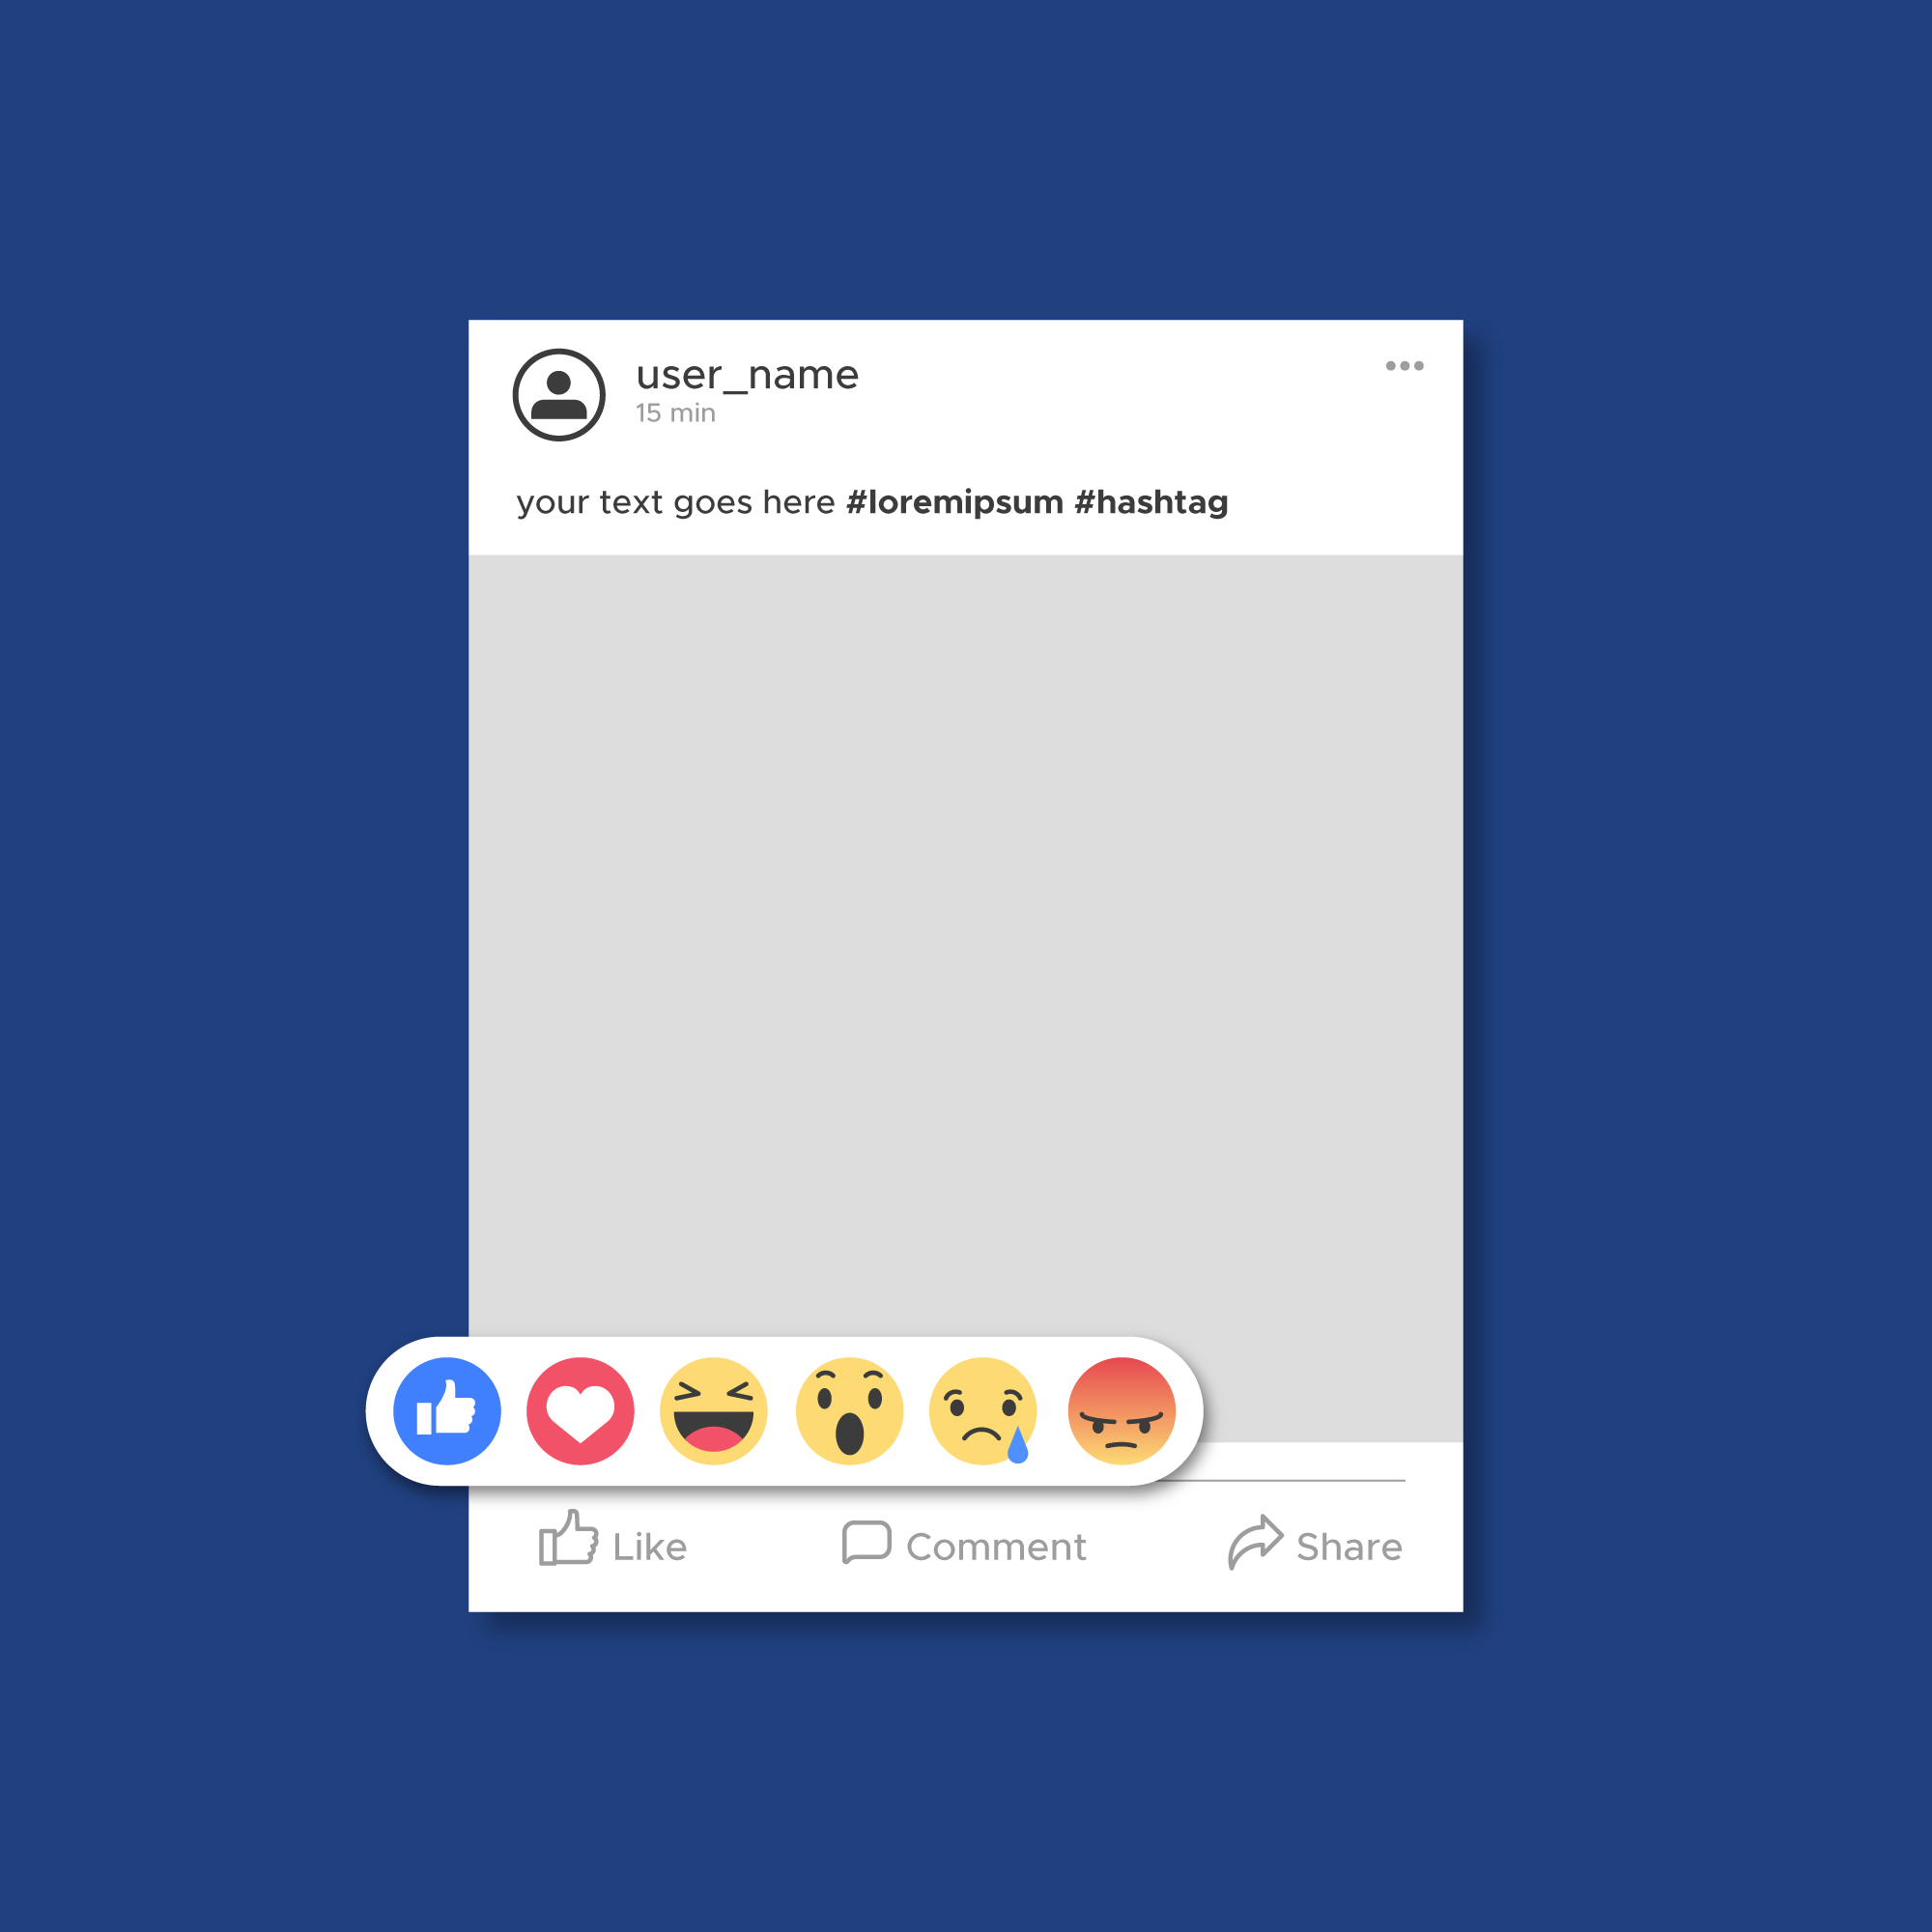 Here is how you can earn money through Facebook